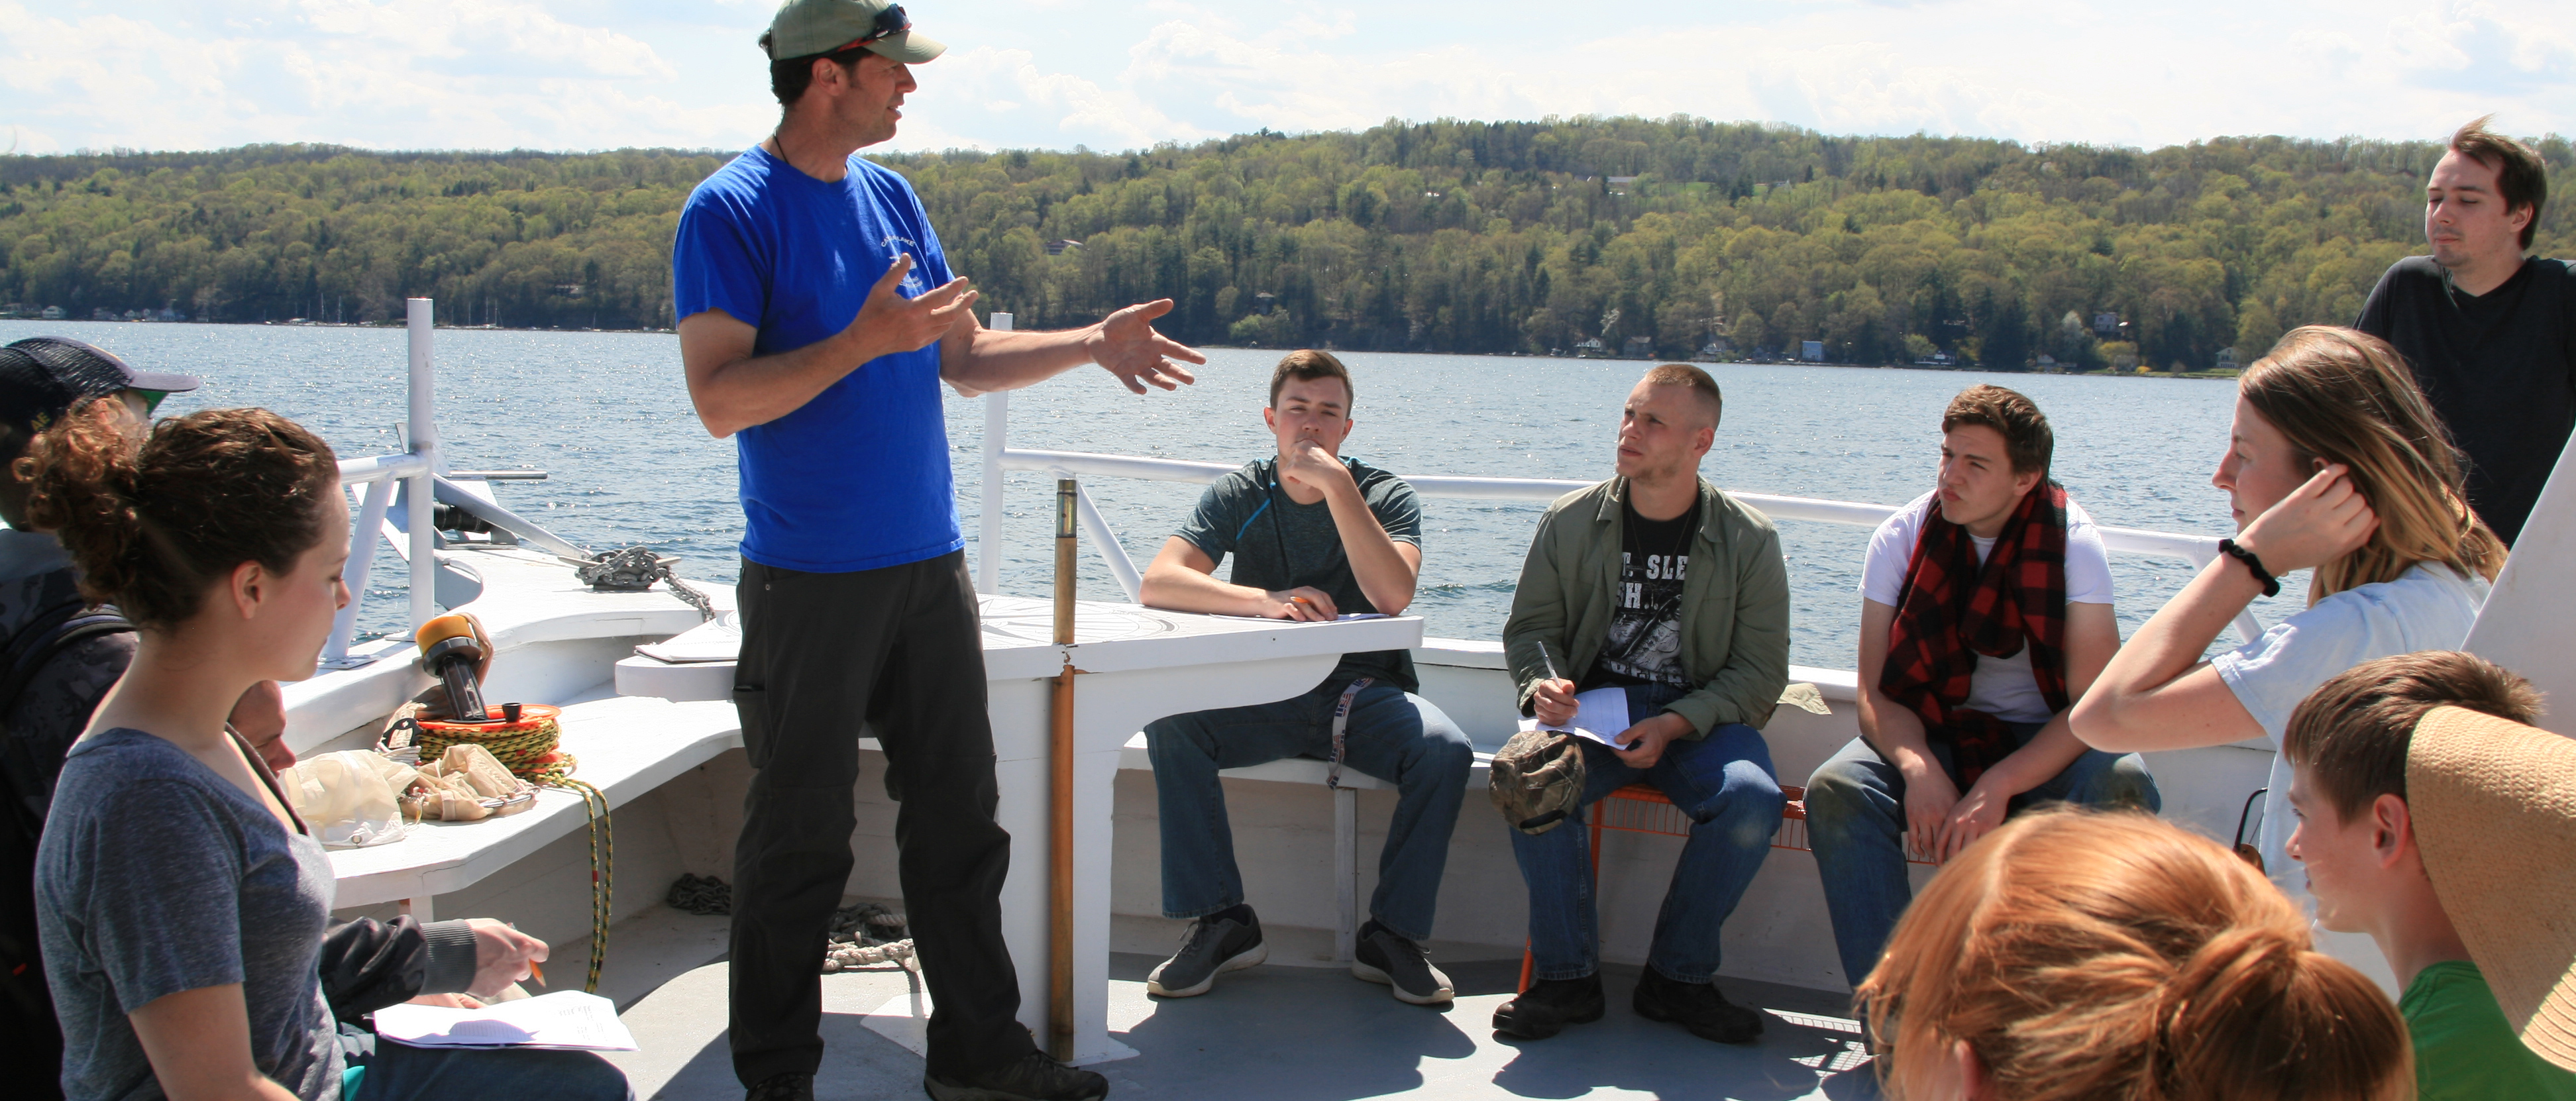 Instructor talking to students on boat